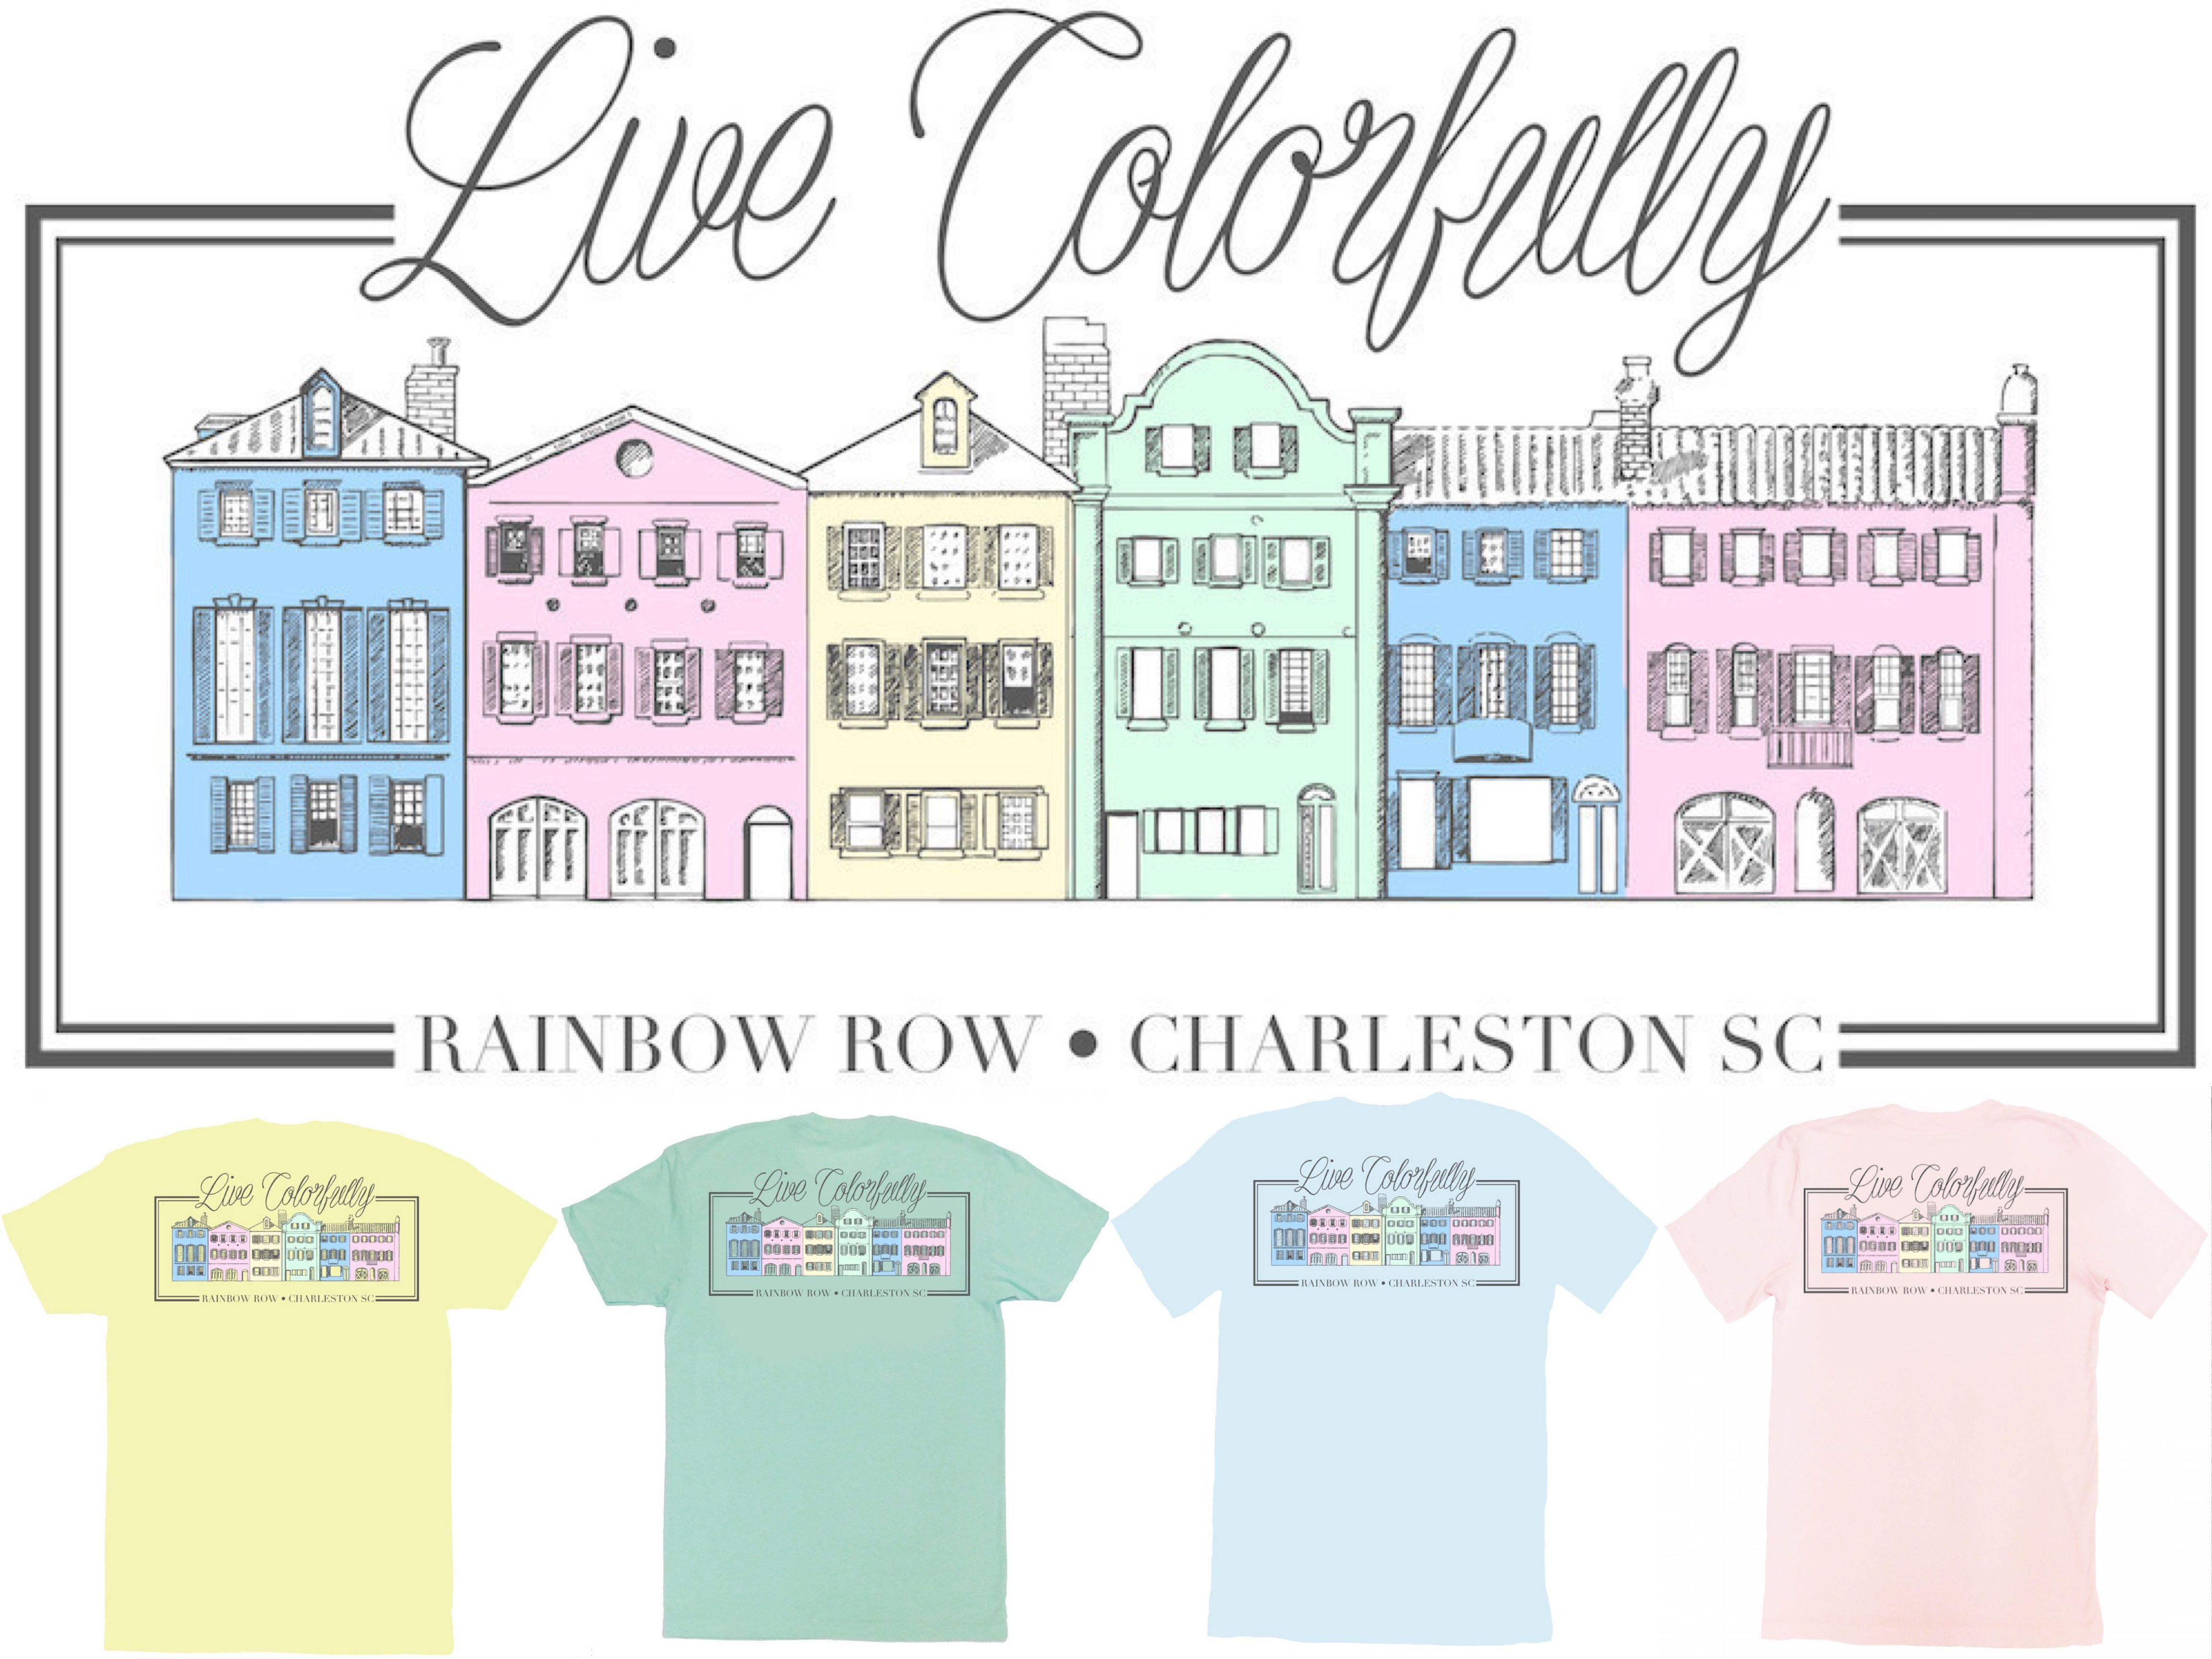 Spring is the best time of the year! The weather is gets warmer & the colors get brighter! This 'Live Colorfully' Spring United Tee is available in 4 colors for ladies who want to Live the American Dream.